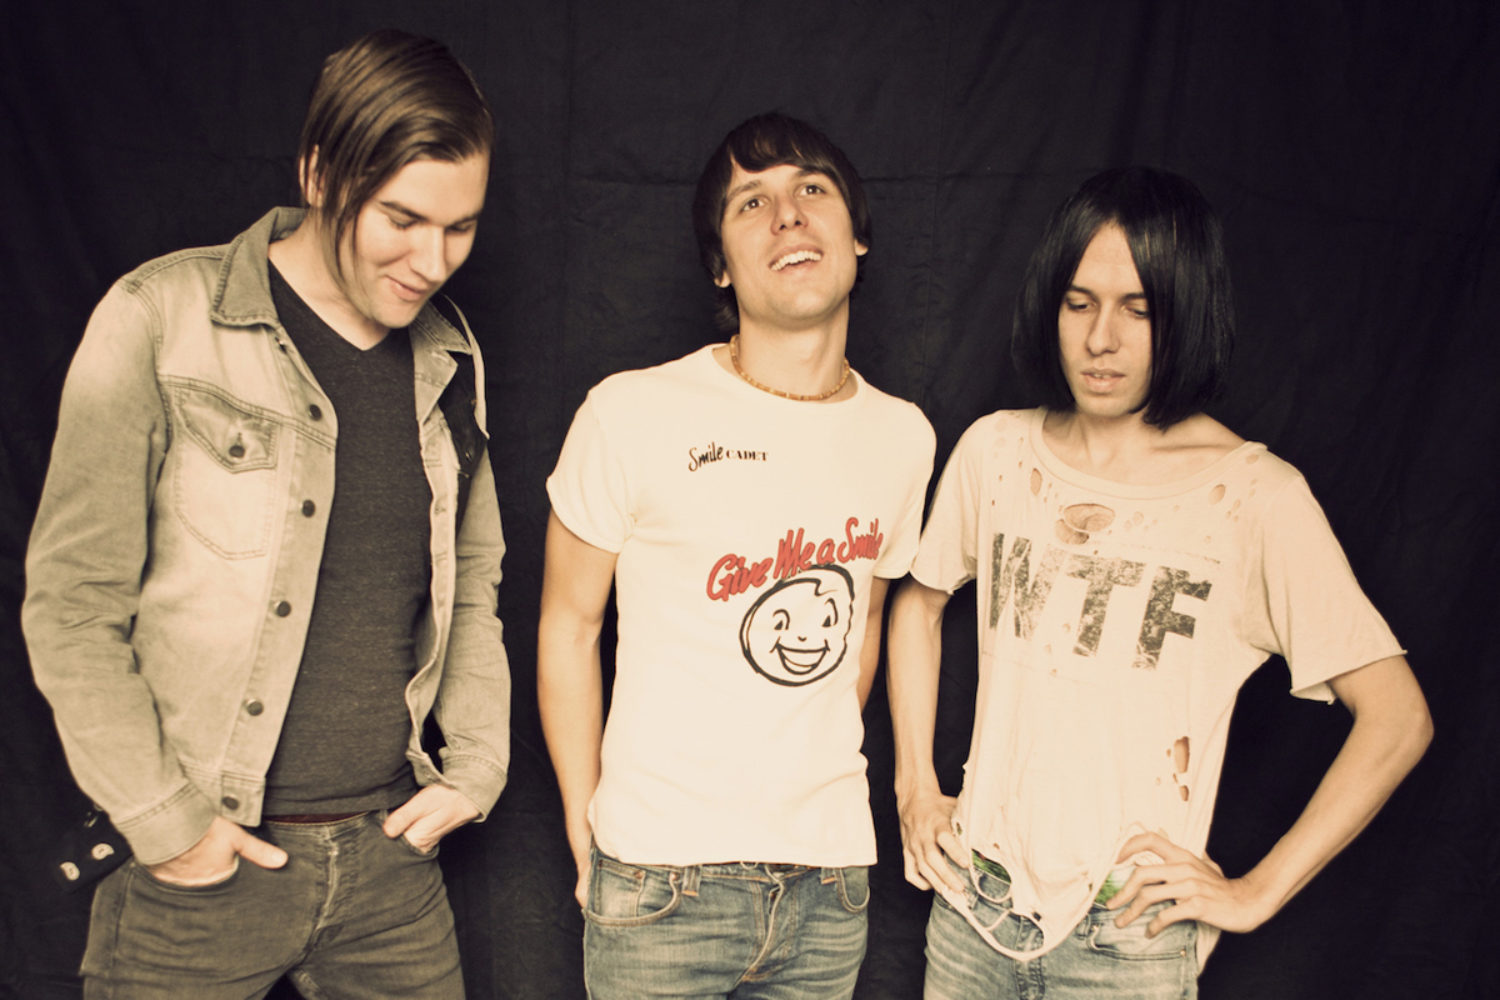 The Cribs, Skepta, Gaz Coombes to play The Great Escape